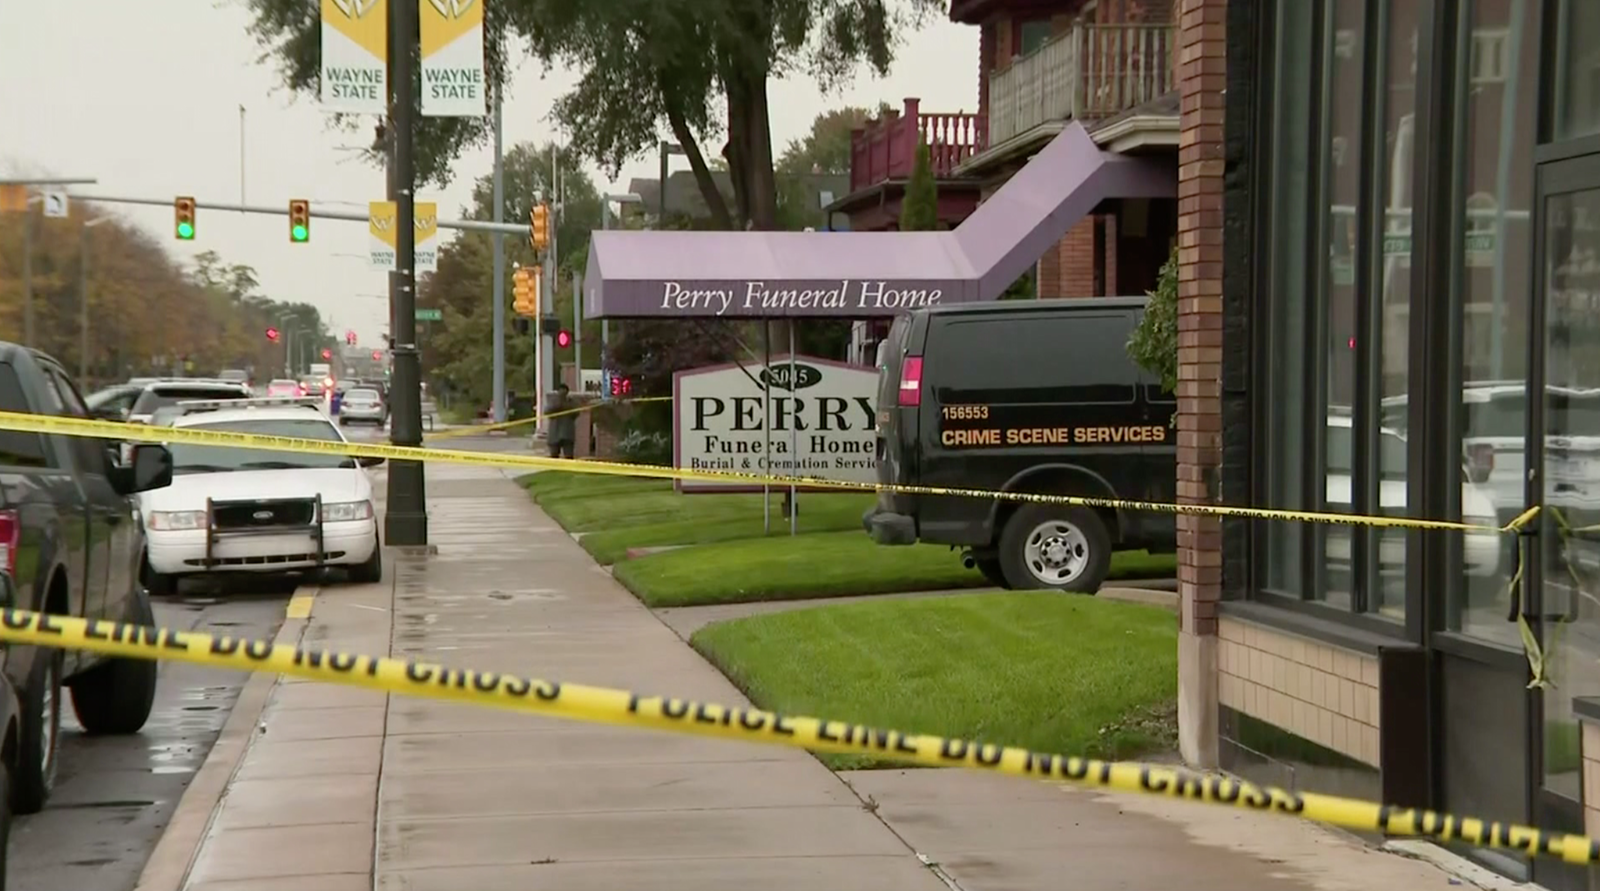 Detroit police found 36 fetuses in boxes and 27 others in freezers during Friday's raid at the Perry Funeral Home. (Photo: CNN Newsource)